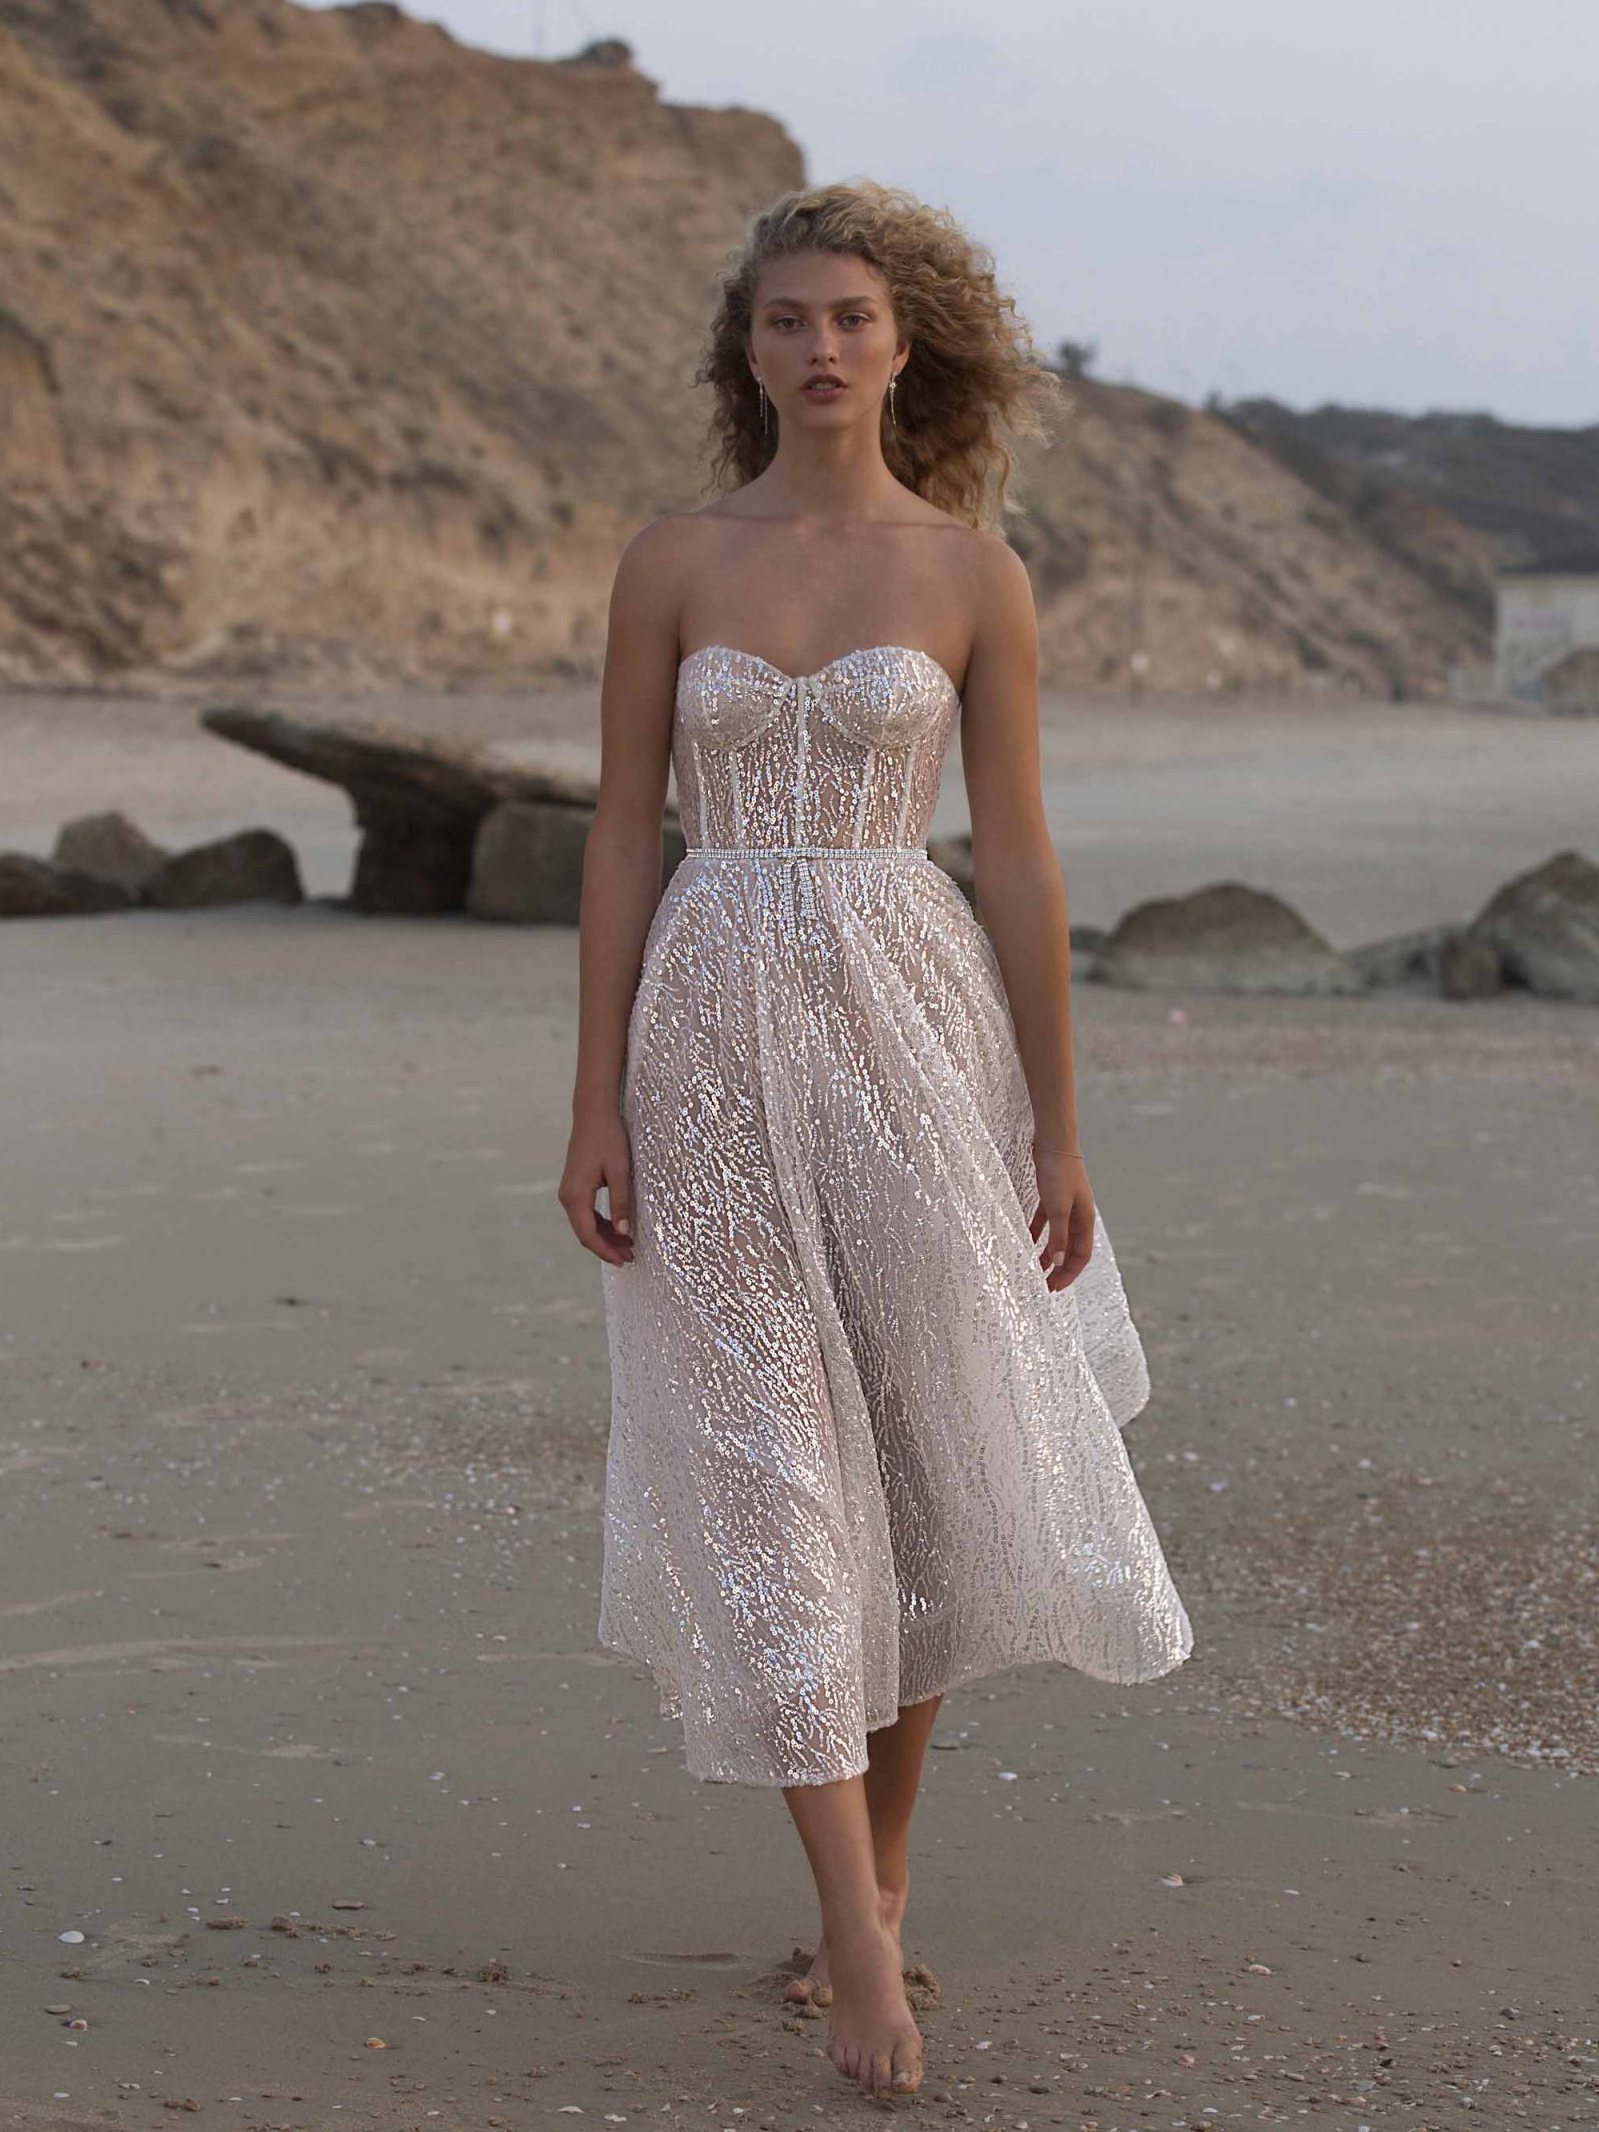 21-HARMONY Bridal Dress Inspirated By Berta Muse 2021 Vista Mare Collection